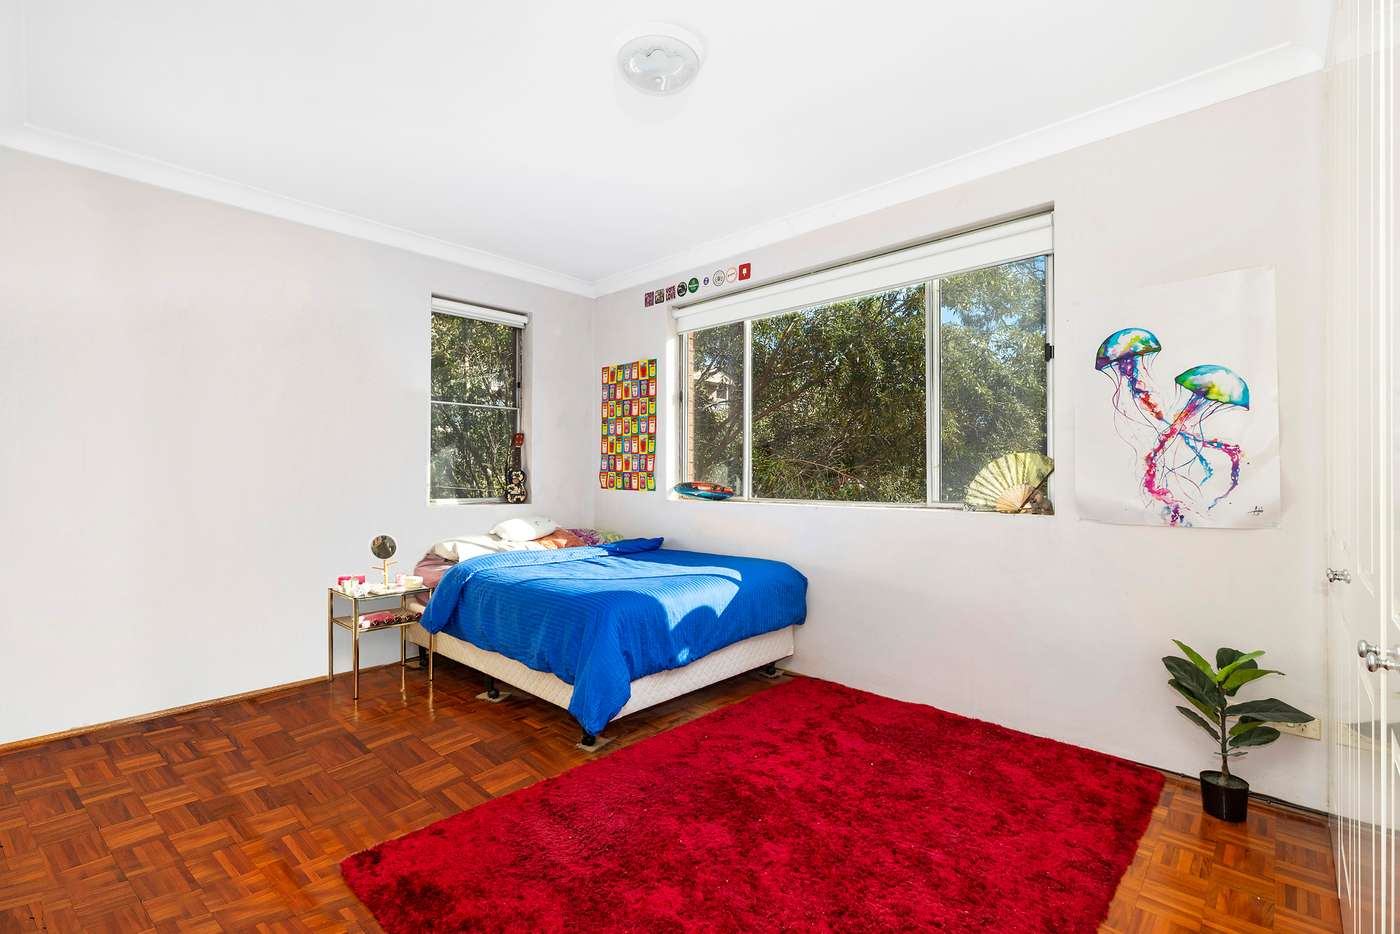 Fifth view of Homely apartment listing, 3/31 Boronia Street, Kensington NSW 2033